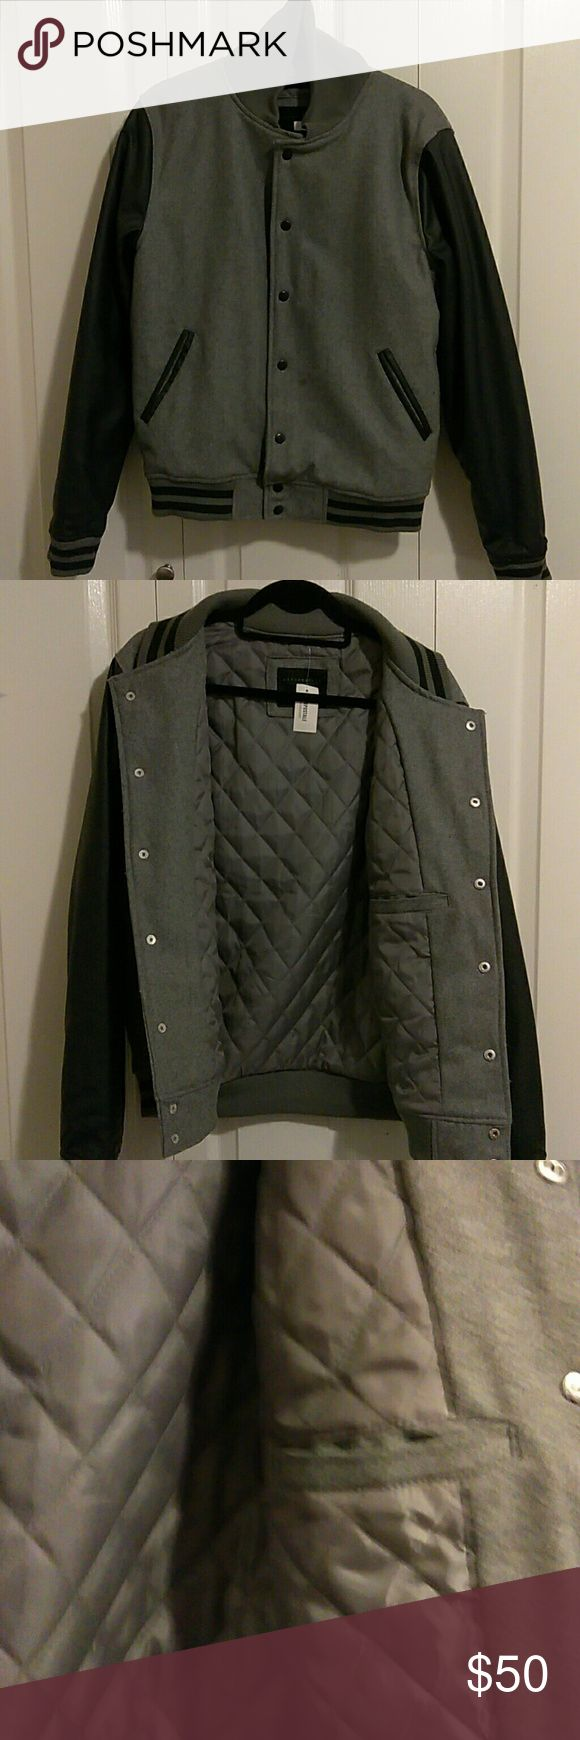 Men's varsity jacket Never worn, great condition, still has price tag Aeropostale Jackets & Coats